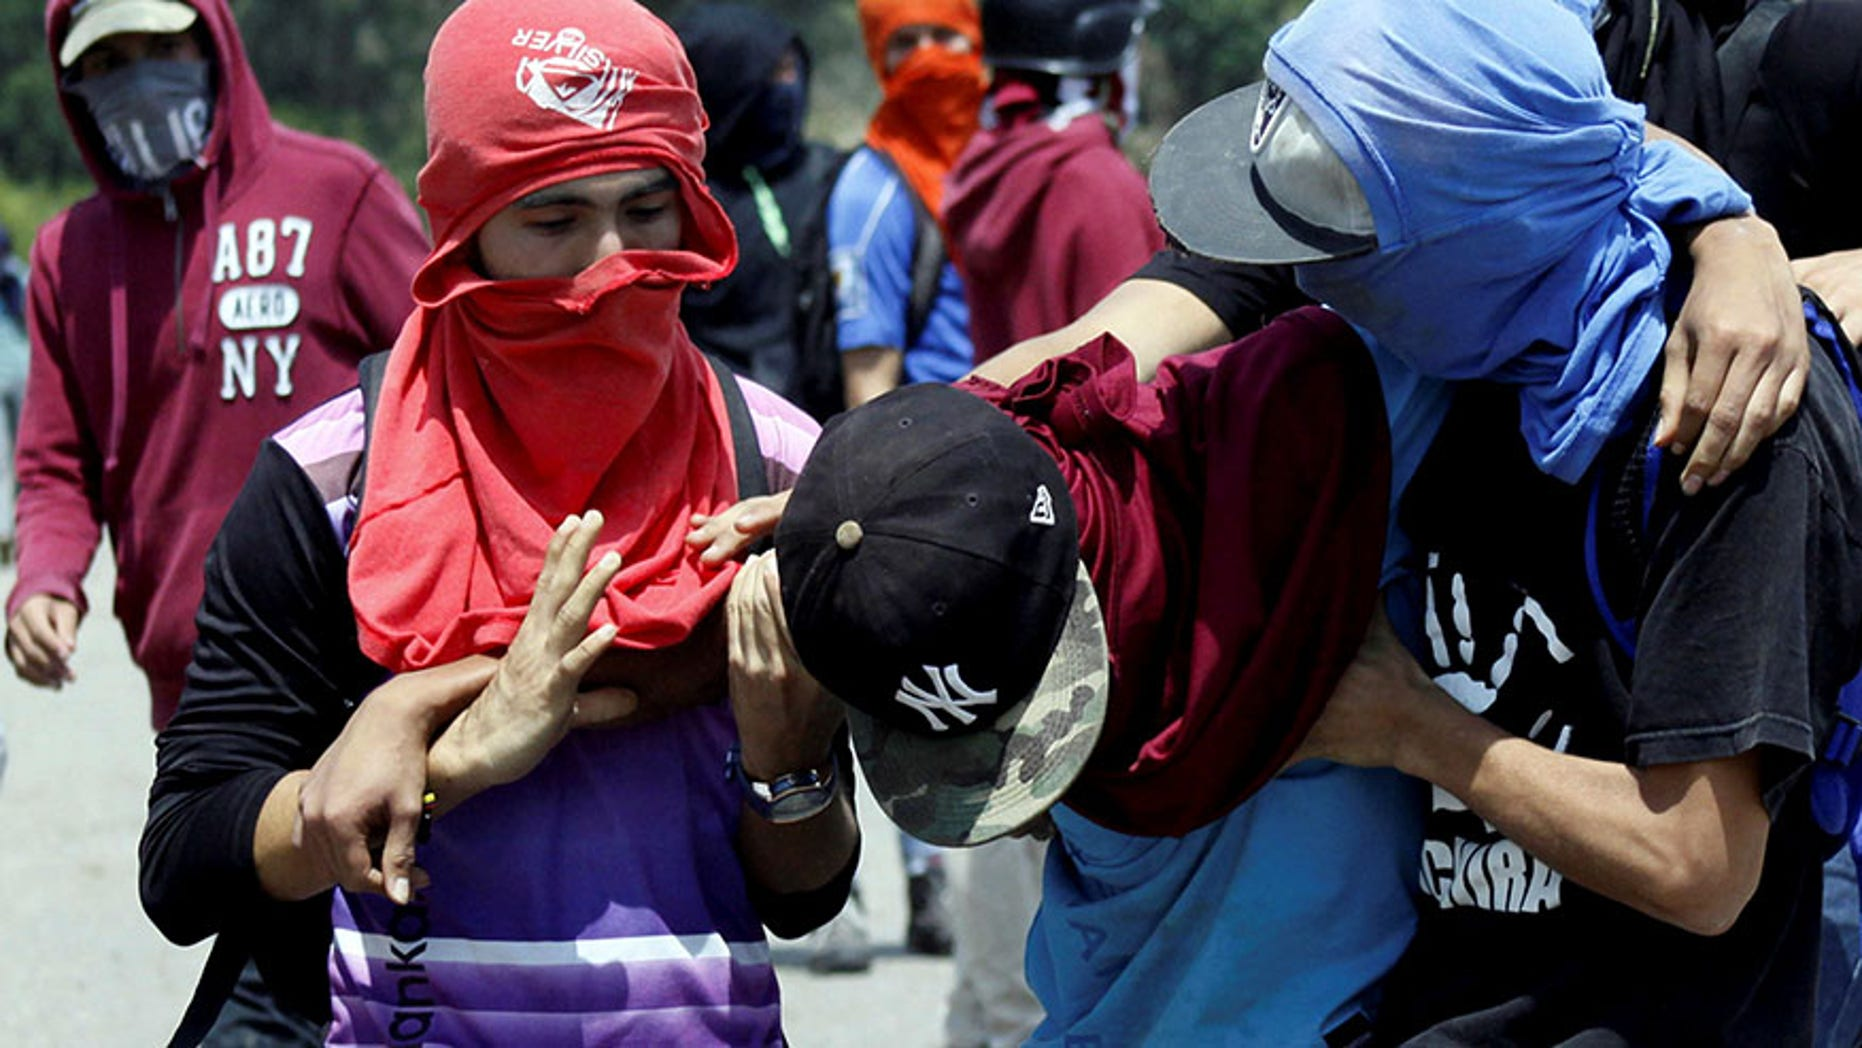 Demonstrators attend to a fellow protester during a protest against Venezuela's government in San Cristobal, Venezuela, April 6, 2017.